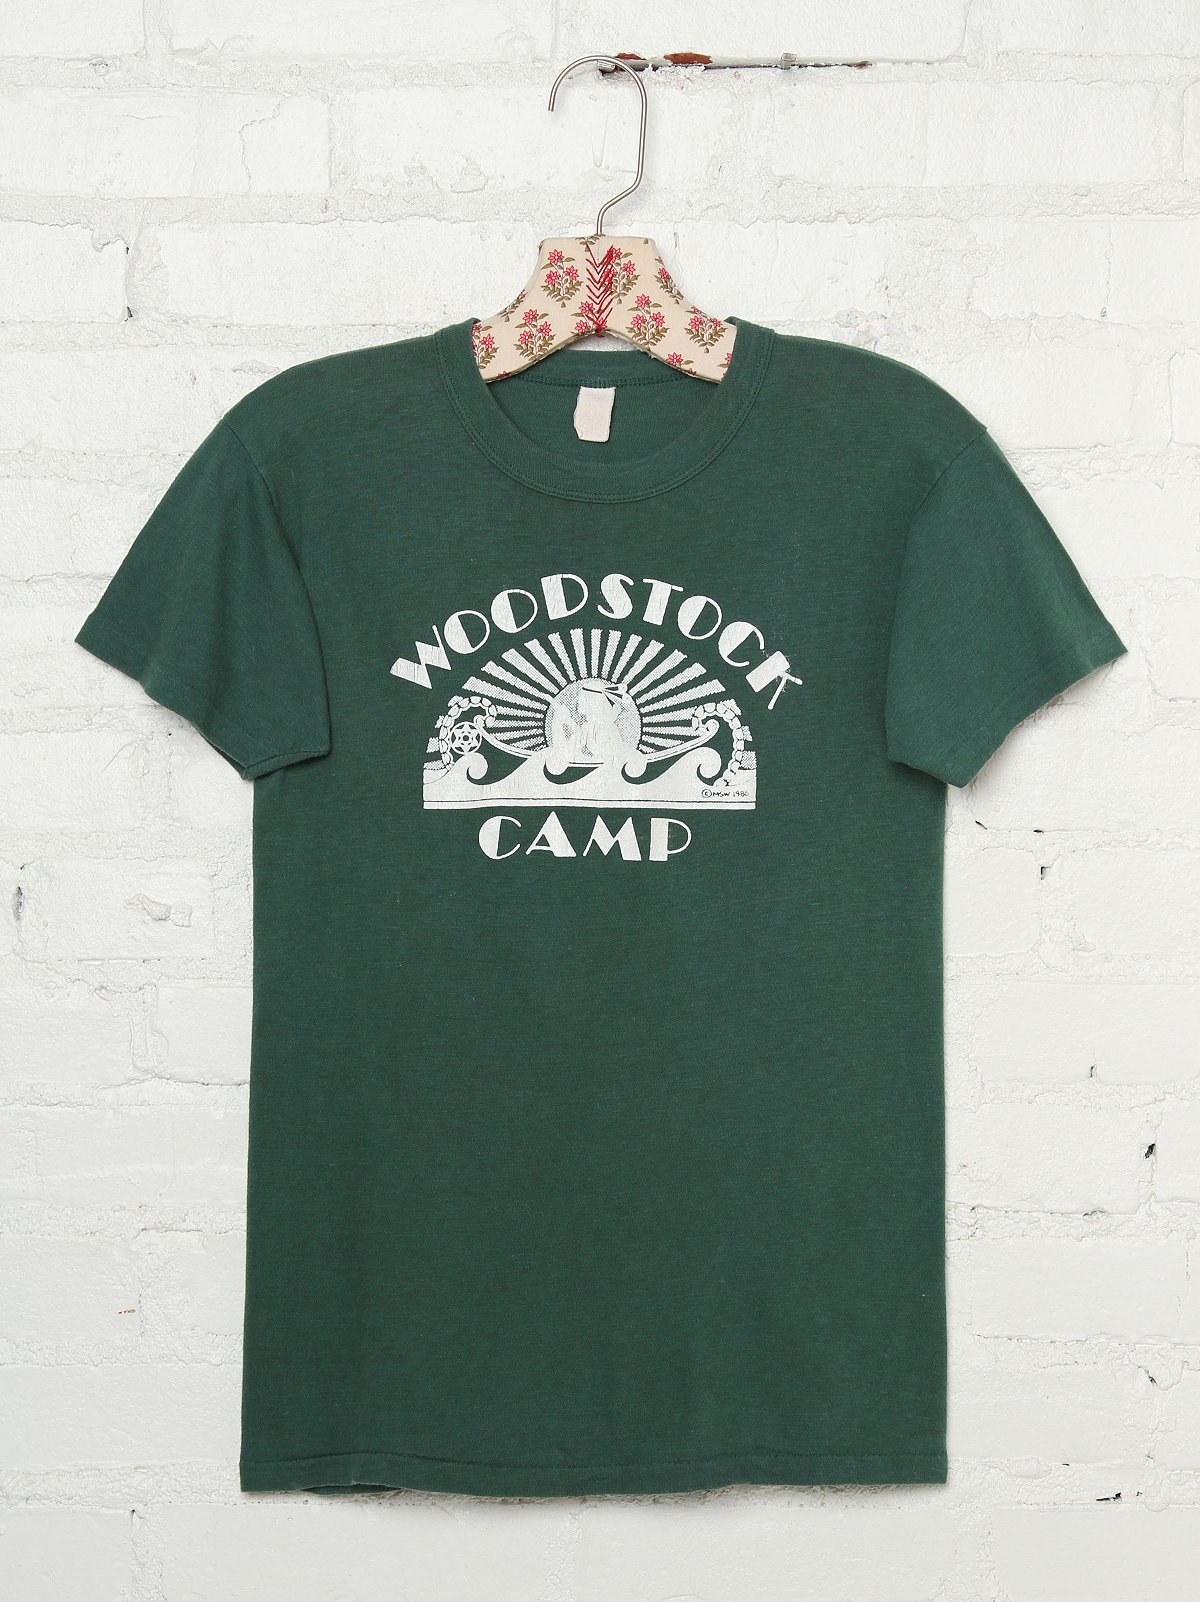 Vintage Woodstock Camp Tee